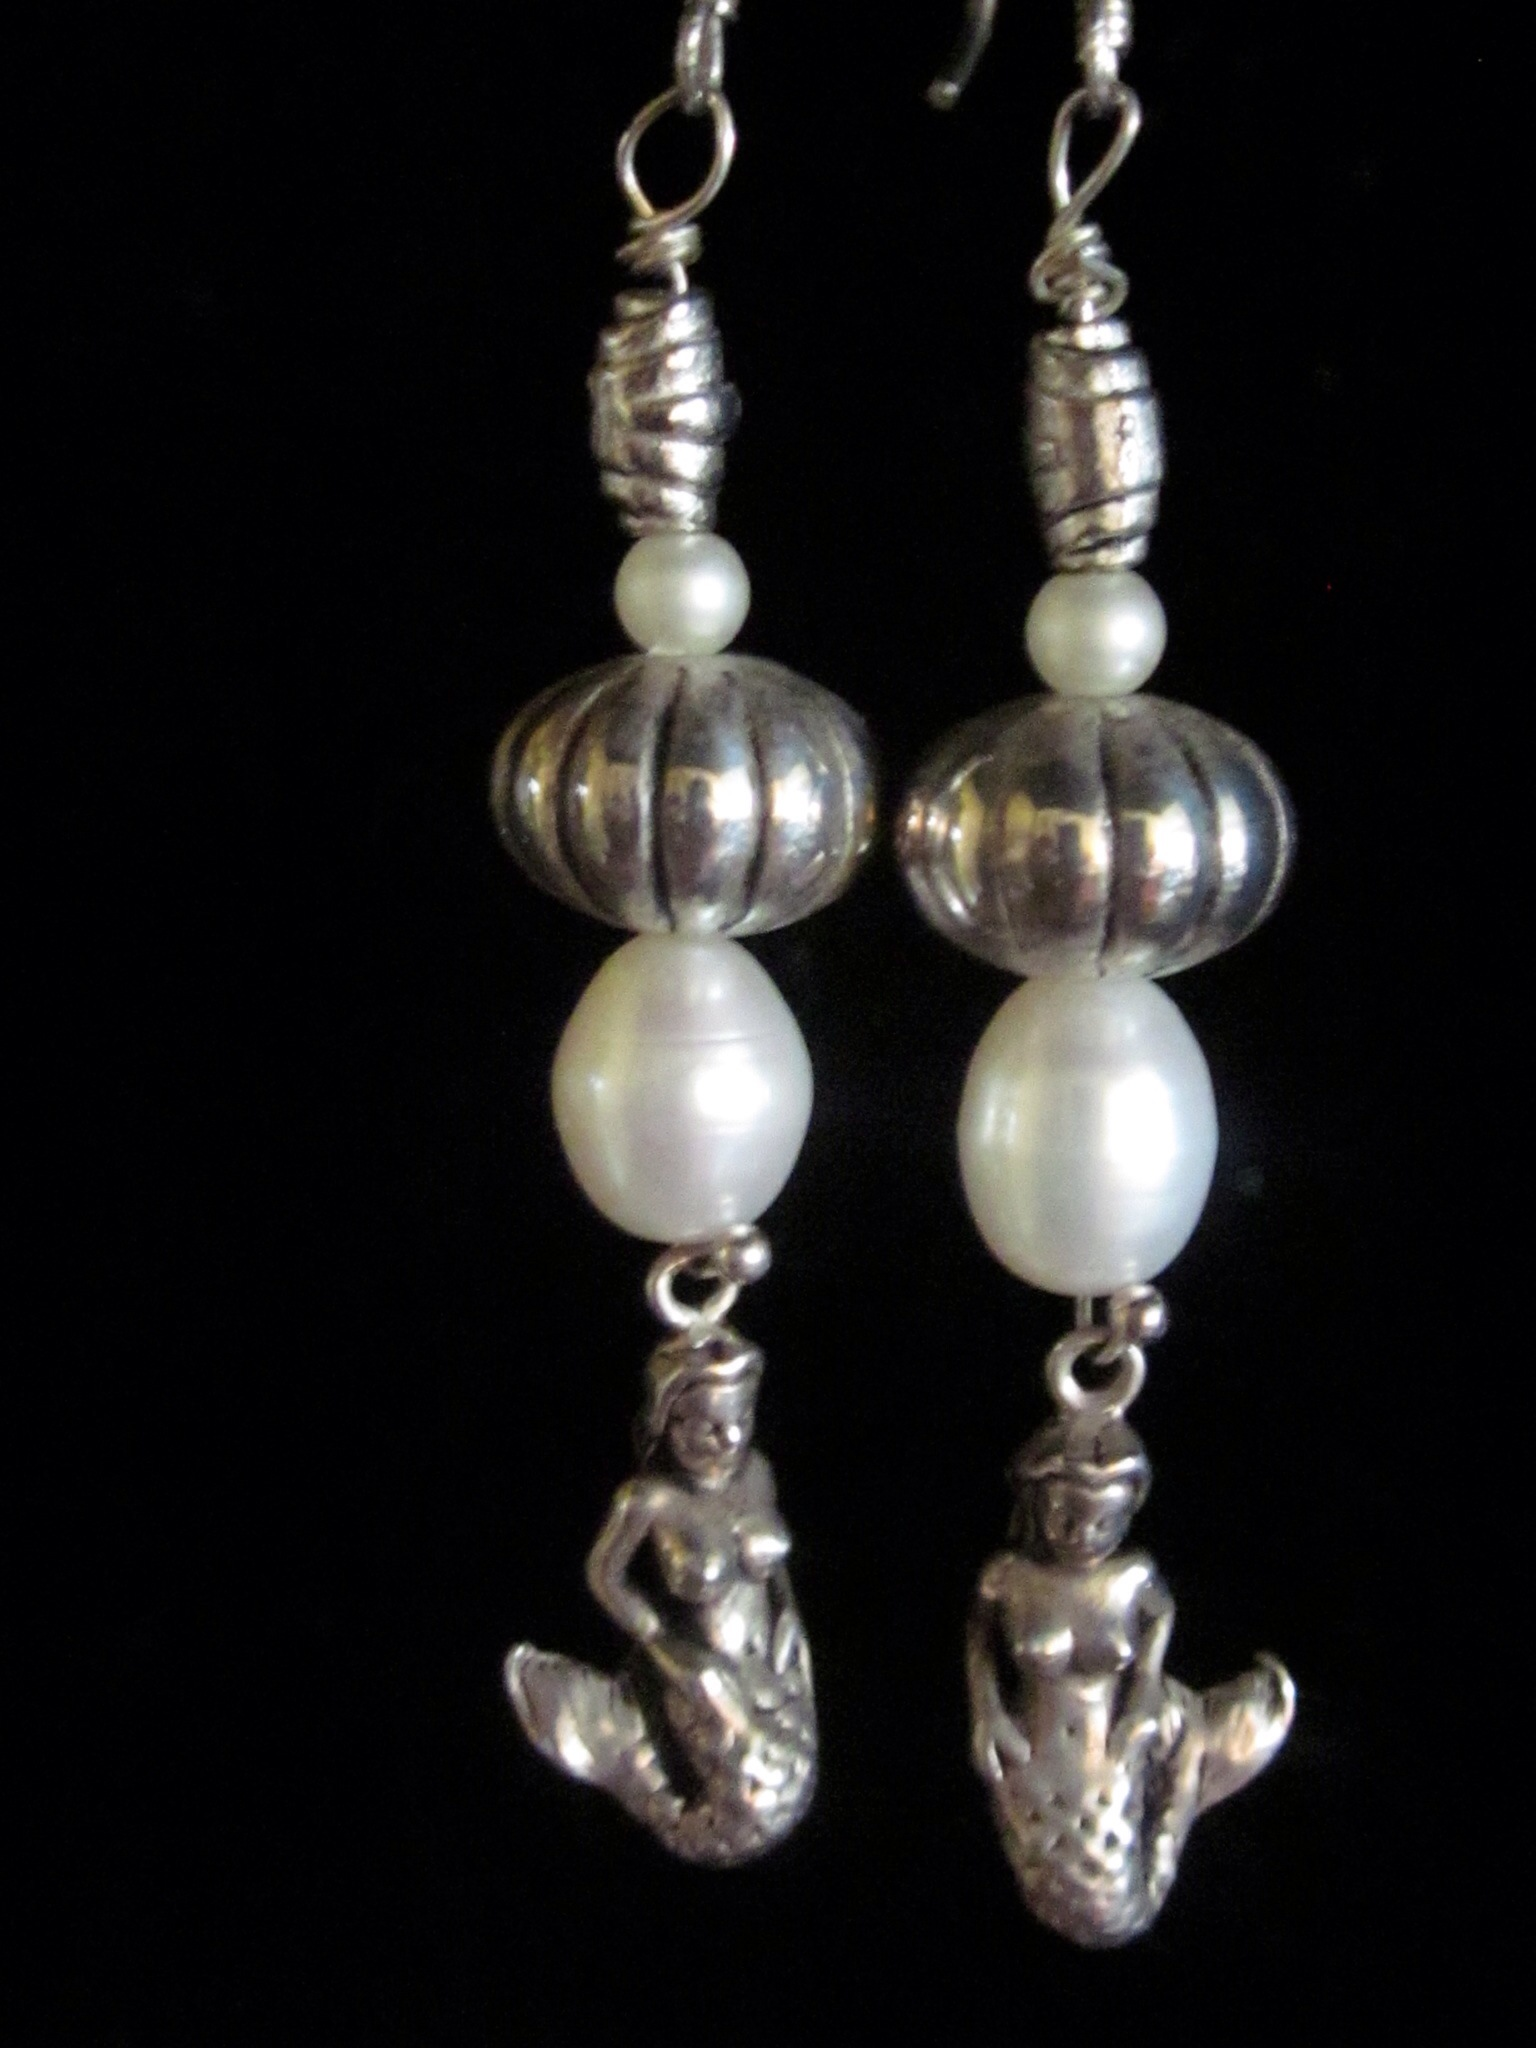 Cast Pewter Mermaid & Bead Earrings W/large Cultured Pearls